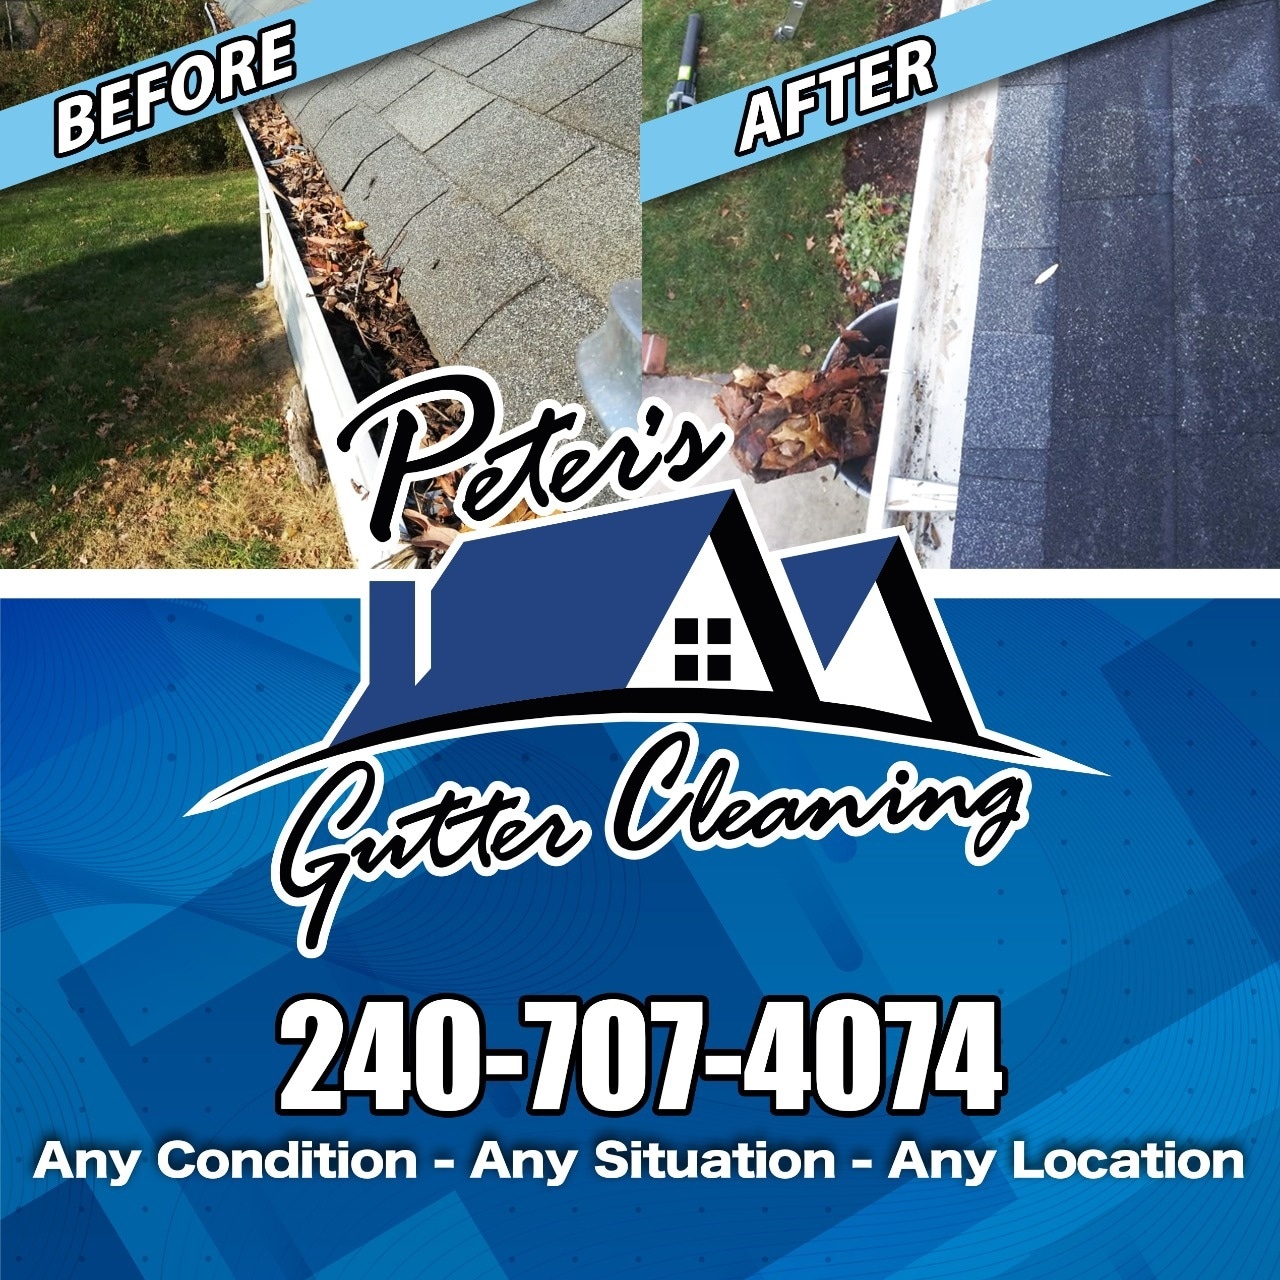 Peter's Gutter Cleaning & More